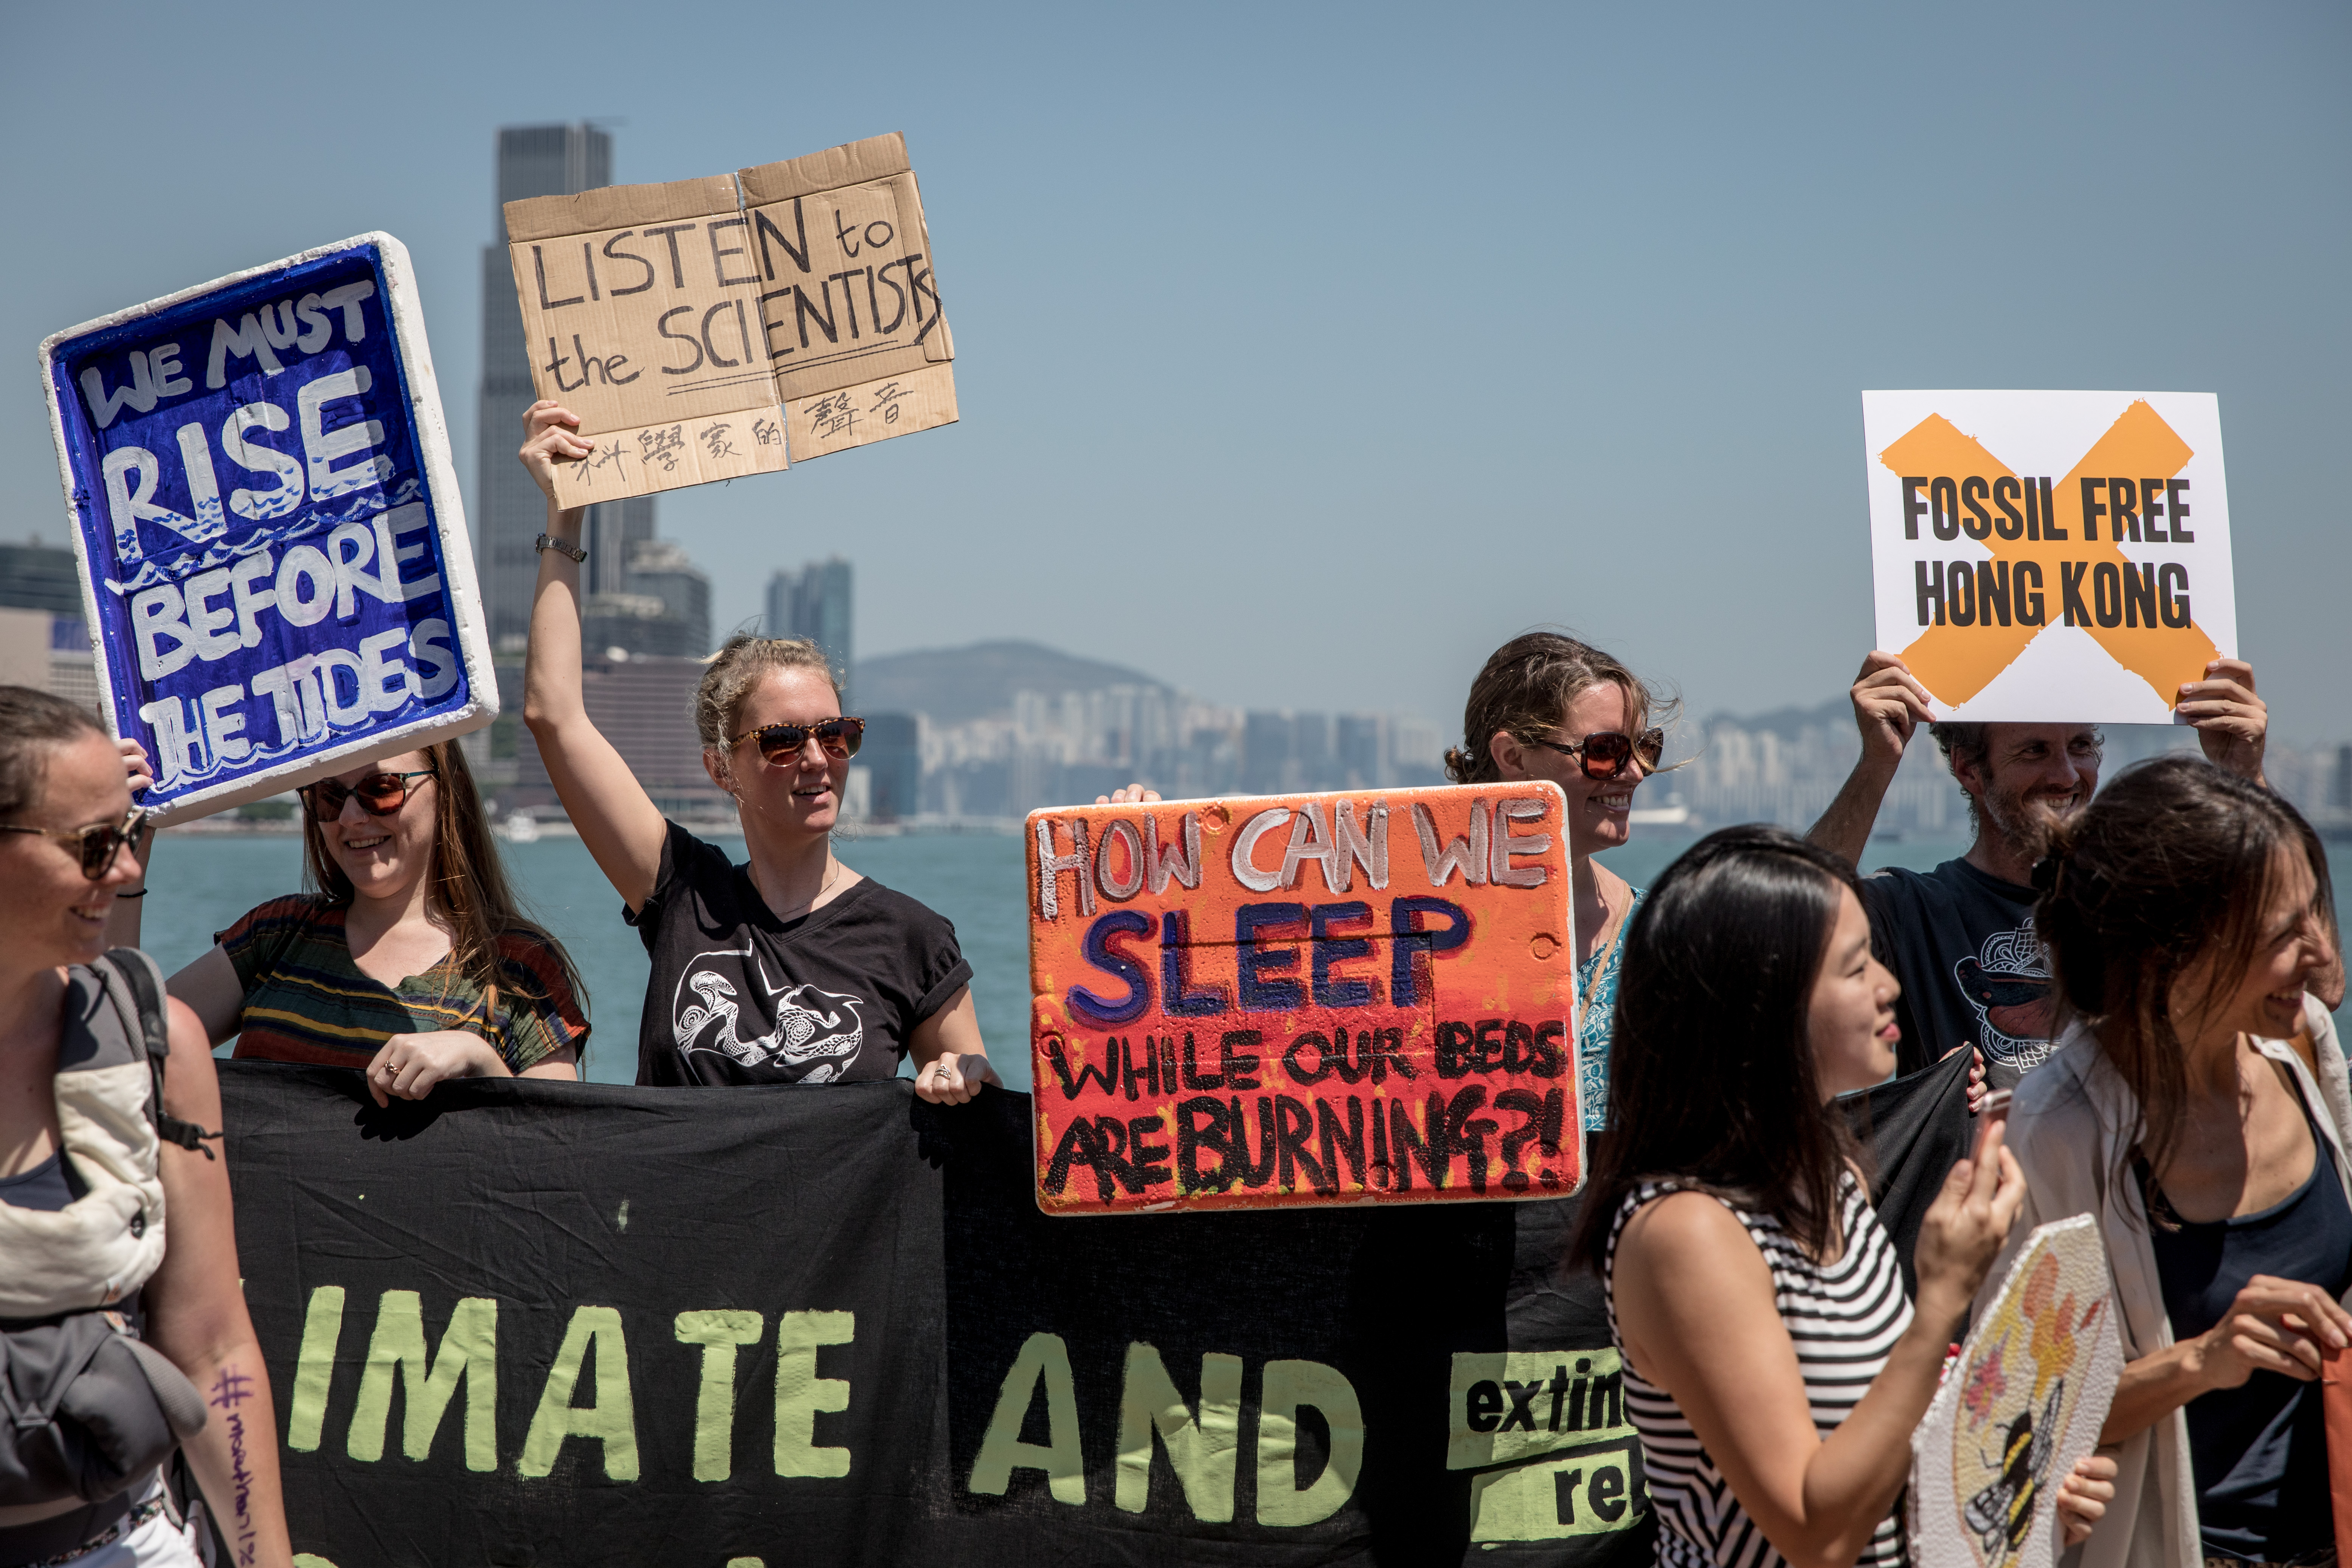 Protesters hold signs and chant slogans during the Hong Kong Climate Strike rally.